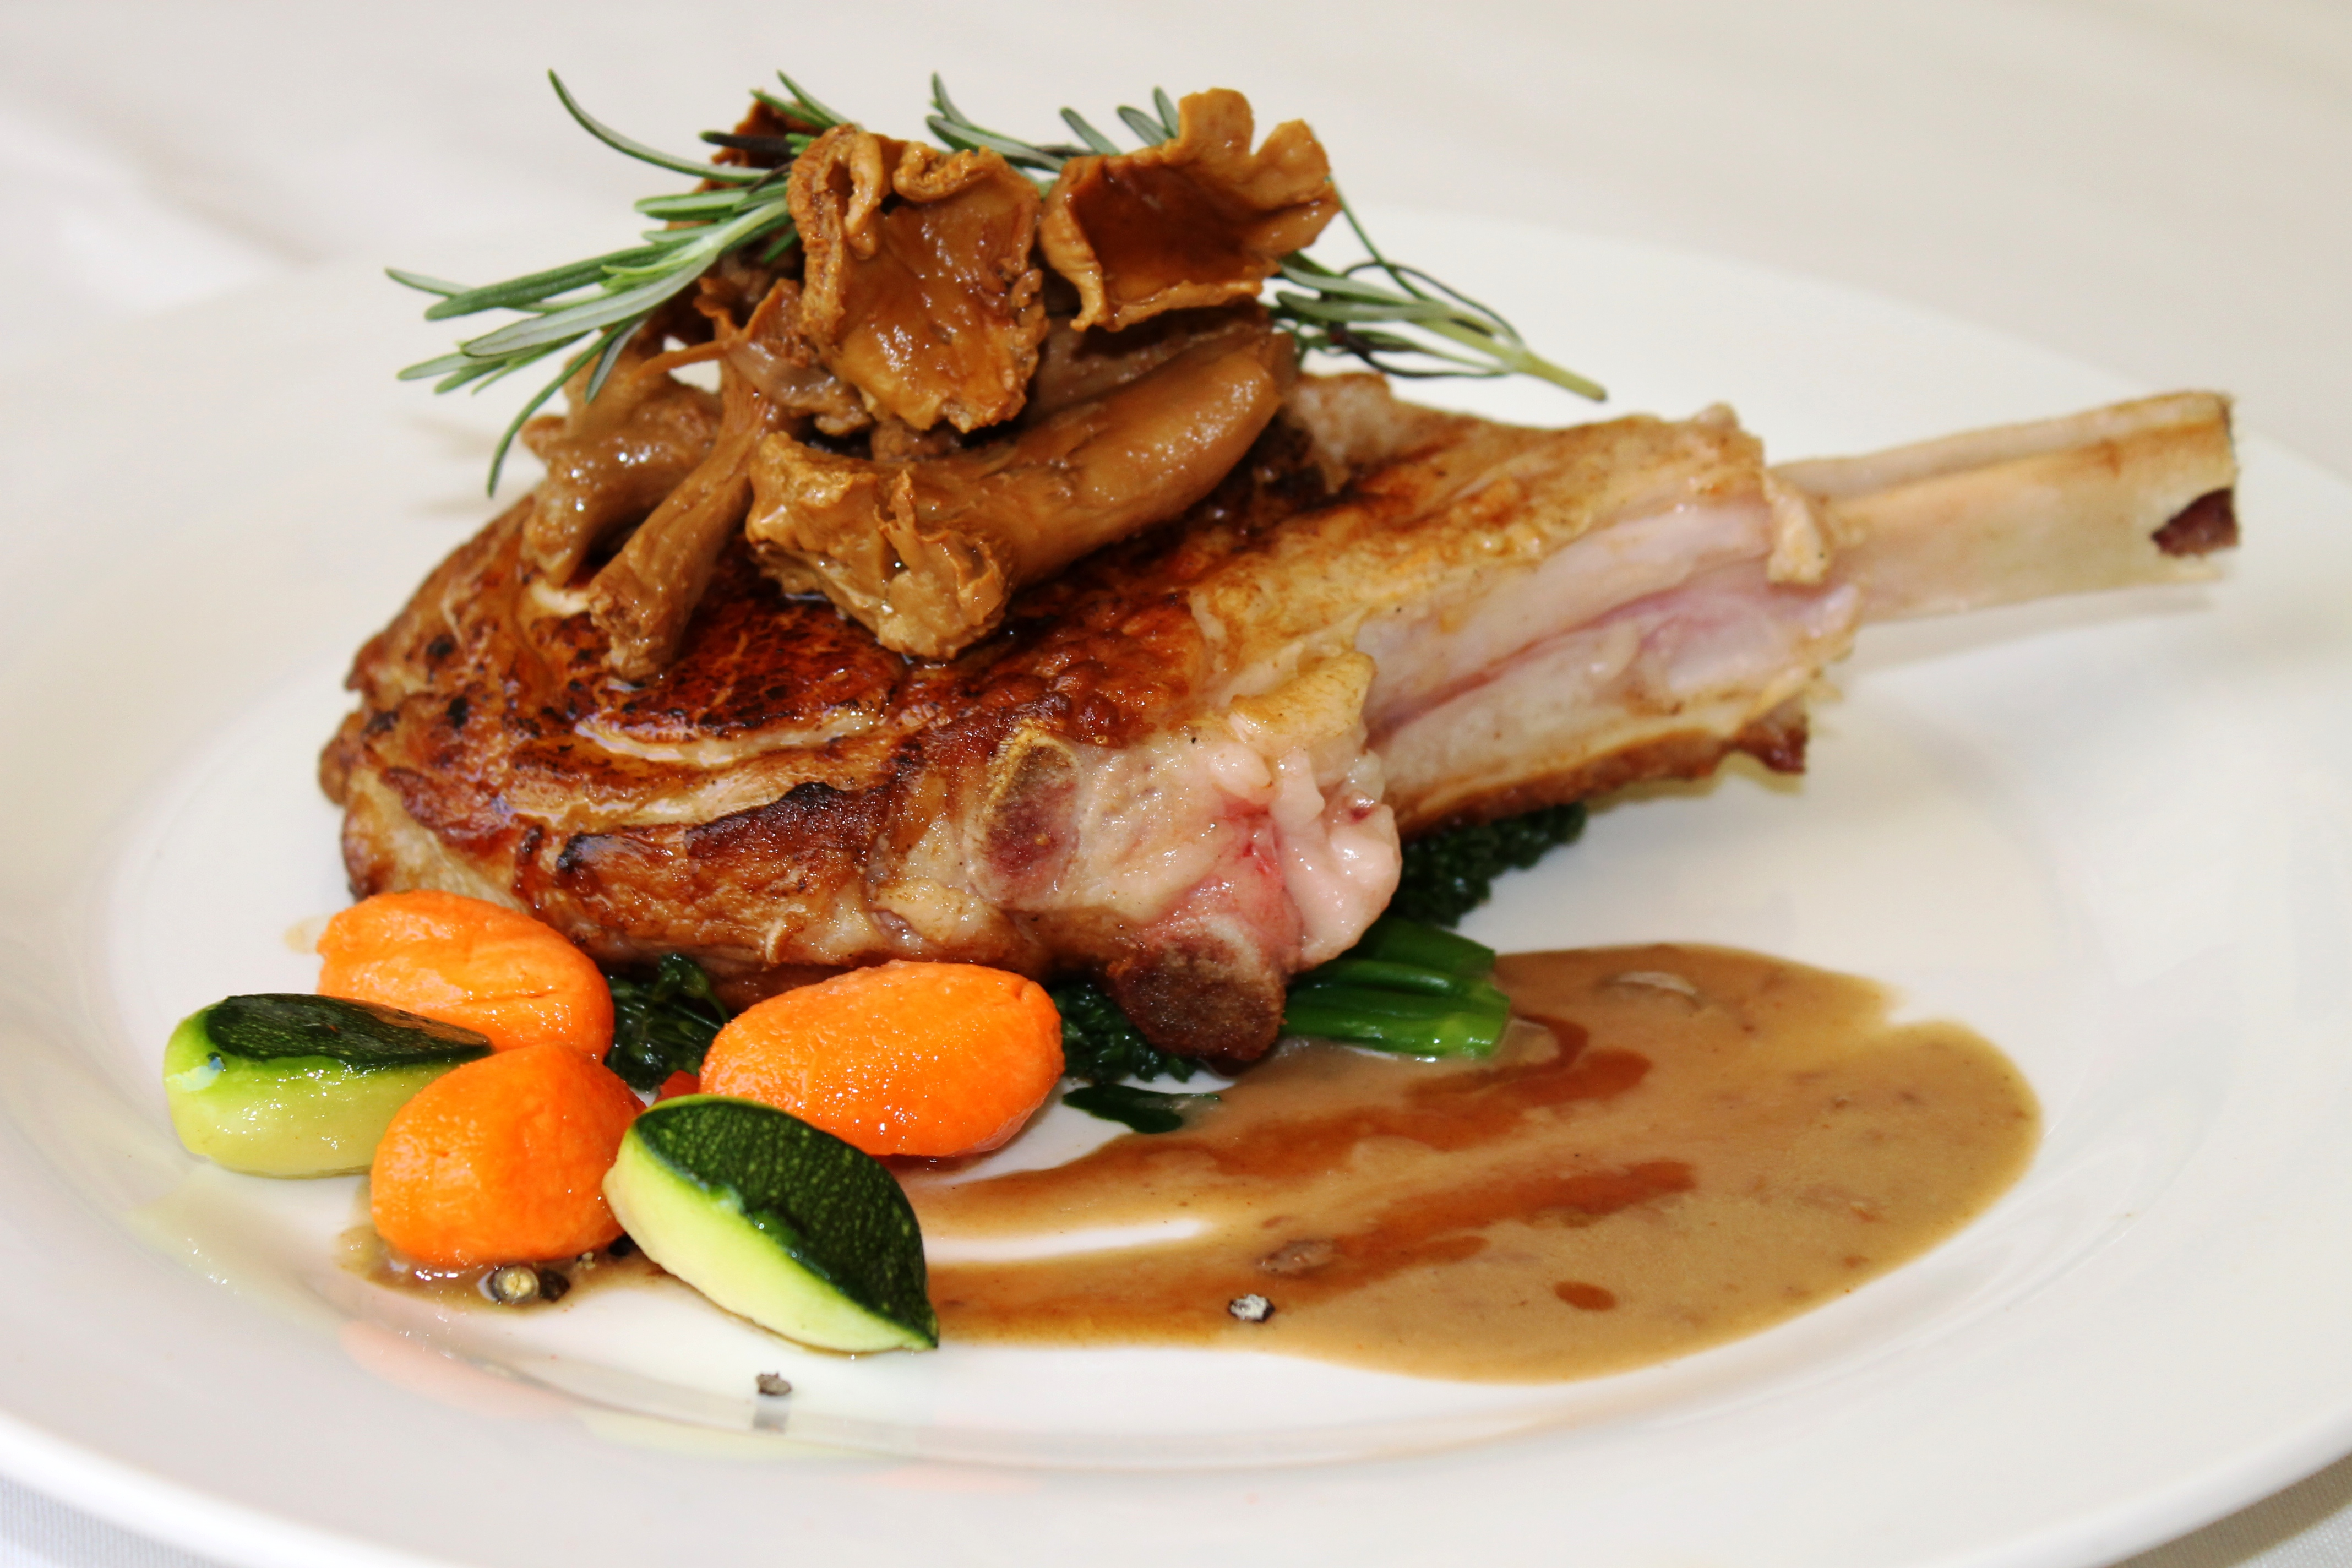 14oz Flame Grilled Veal Chop